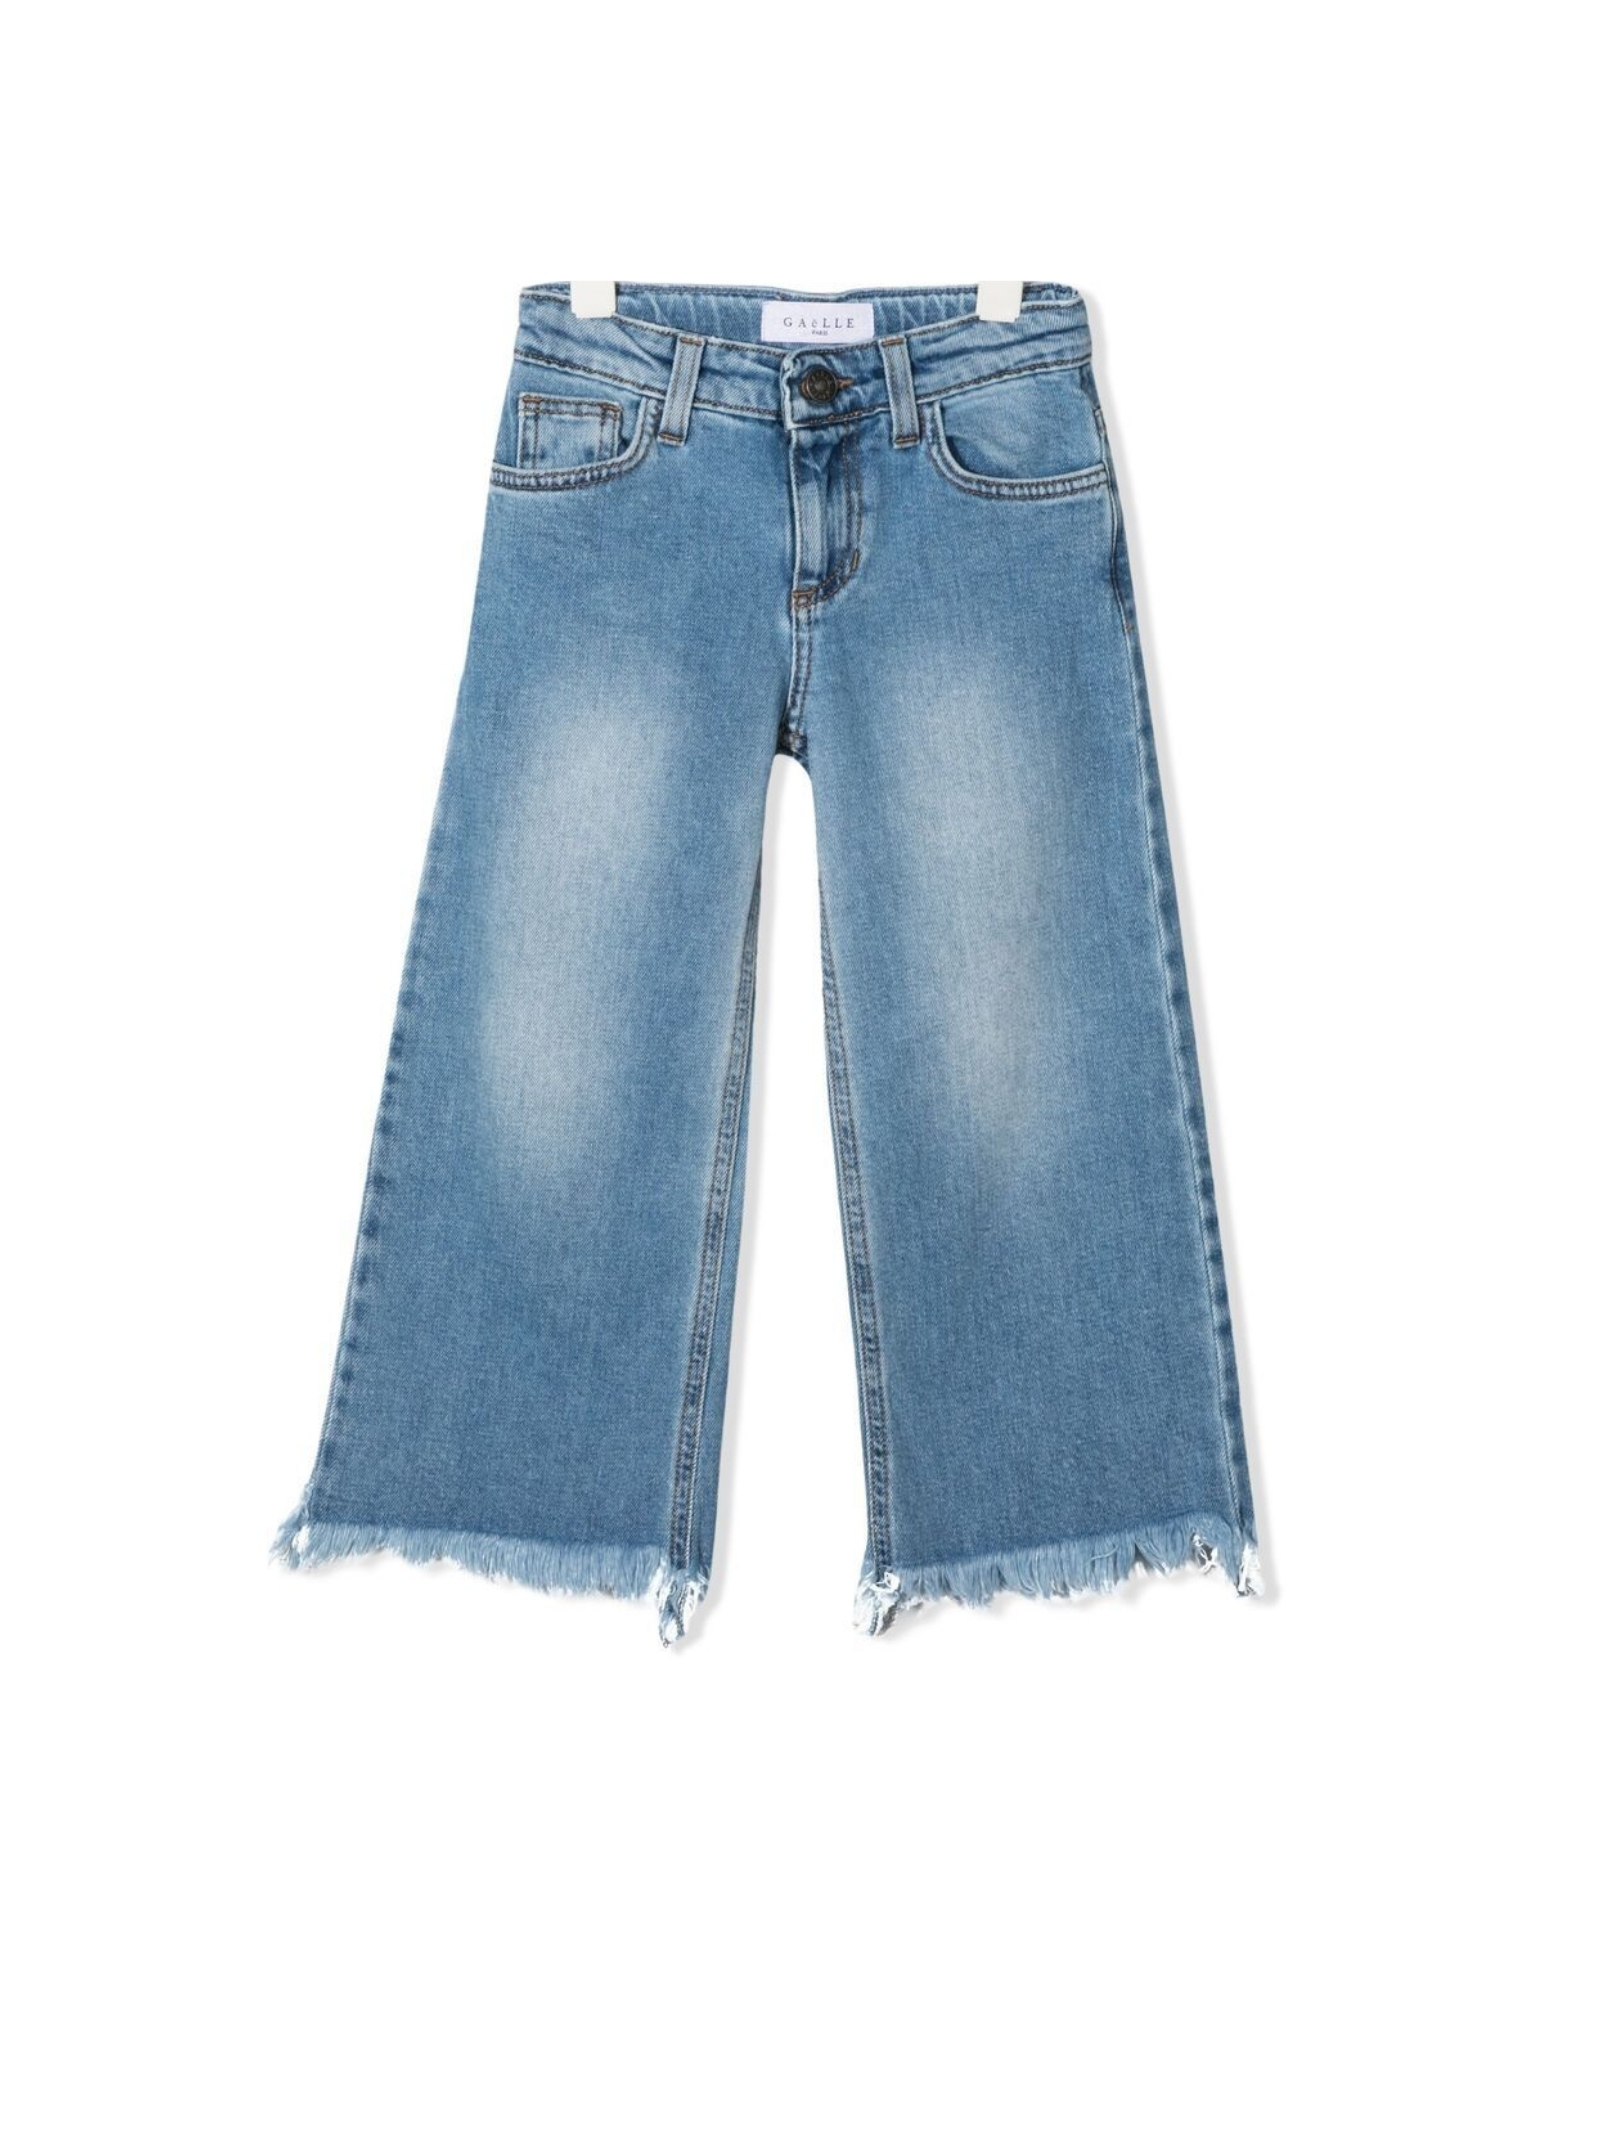 Pantalone Denim Bambina GAËLLE PARIS KIDS | Pantaloni | 2746D0423DENIM